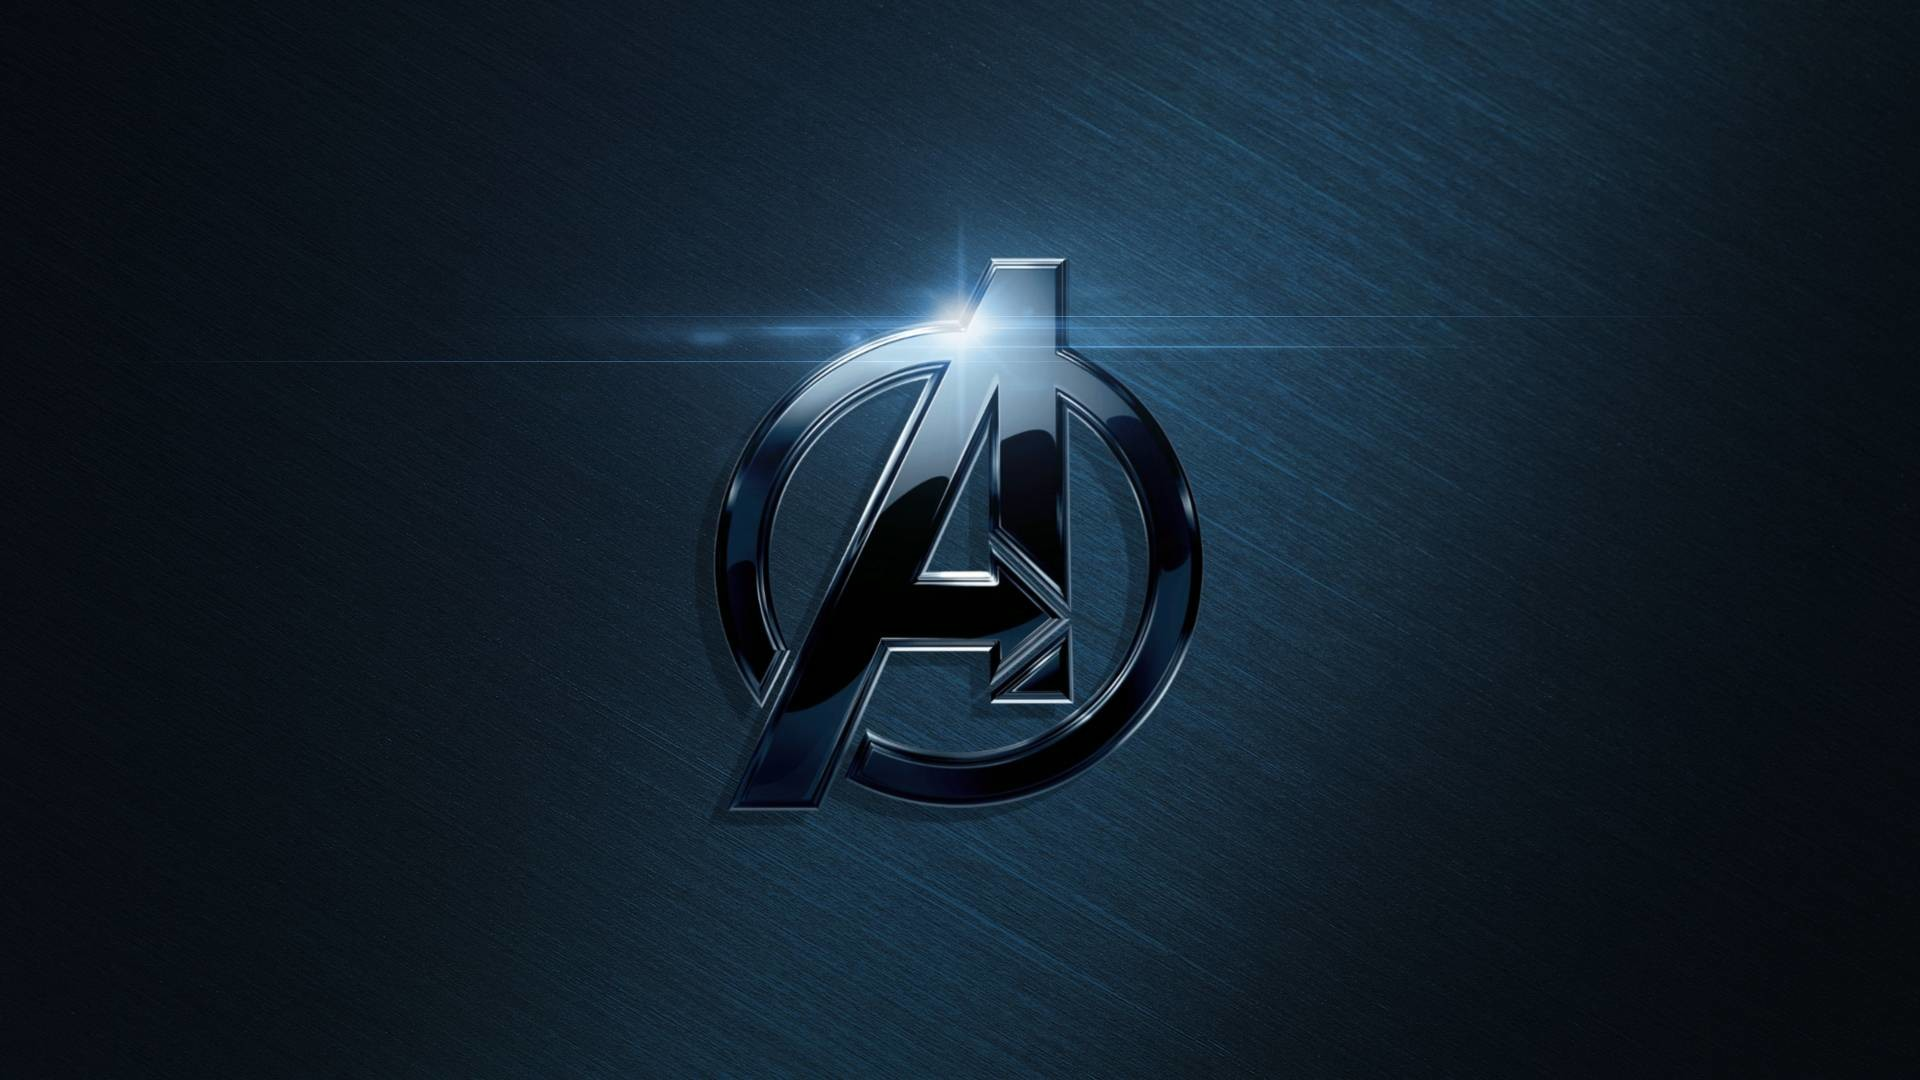 avengers logo wallpaper ·①